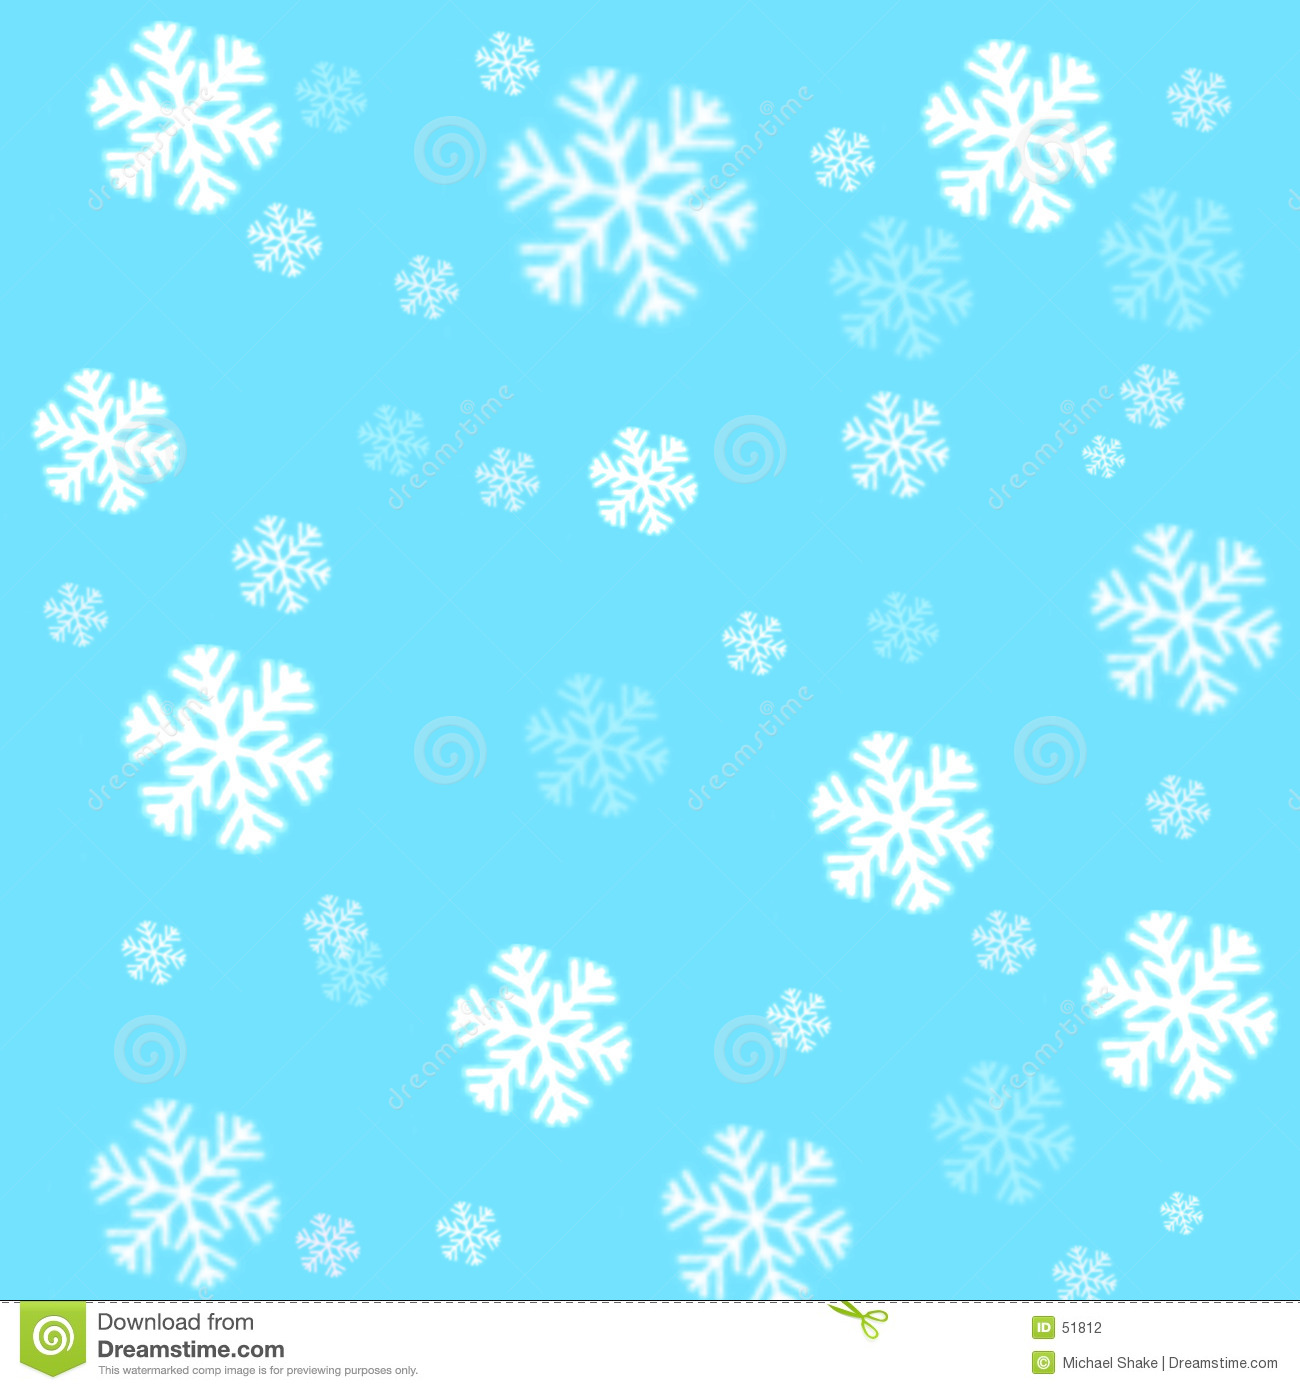 3d Snow Falling Wallpaper Snowflakes On A Sky Blue Background Stock Photography